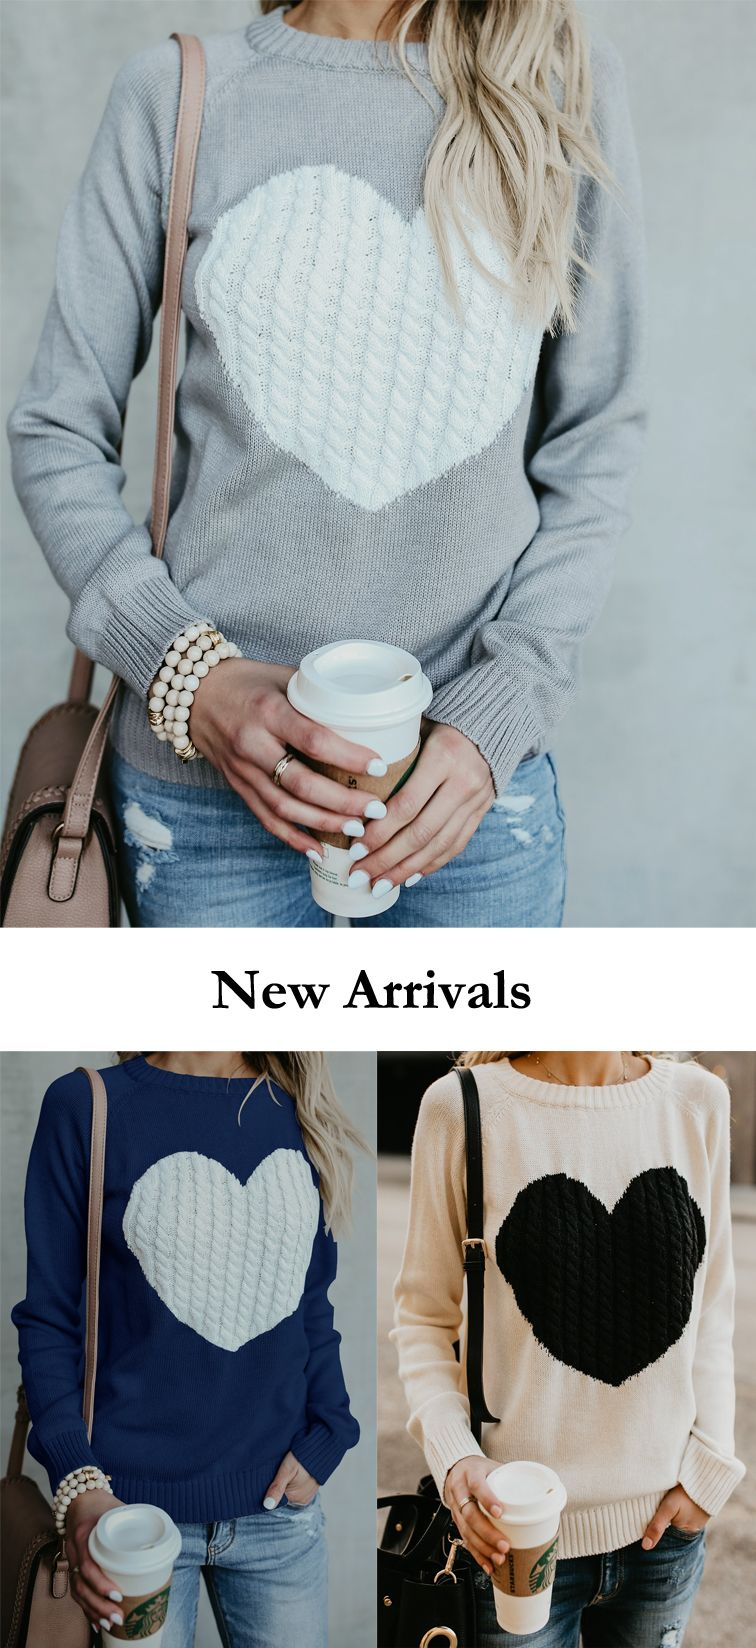 3bfdf932cd72 sweater  womensfashion  newarrivals  Poppoly  valentinesday